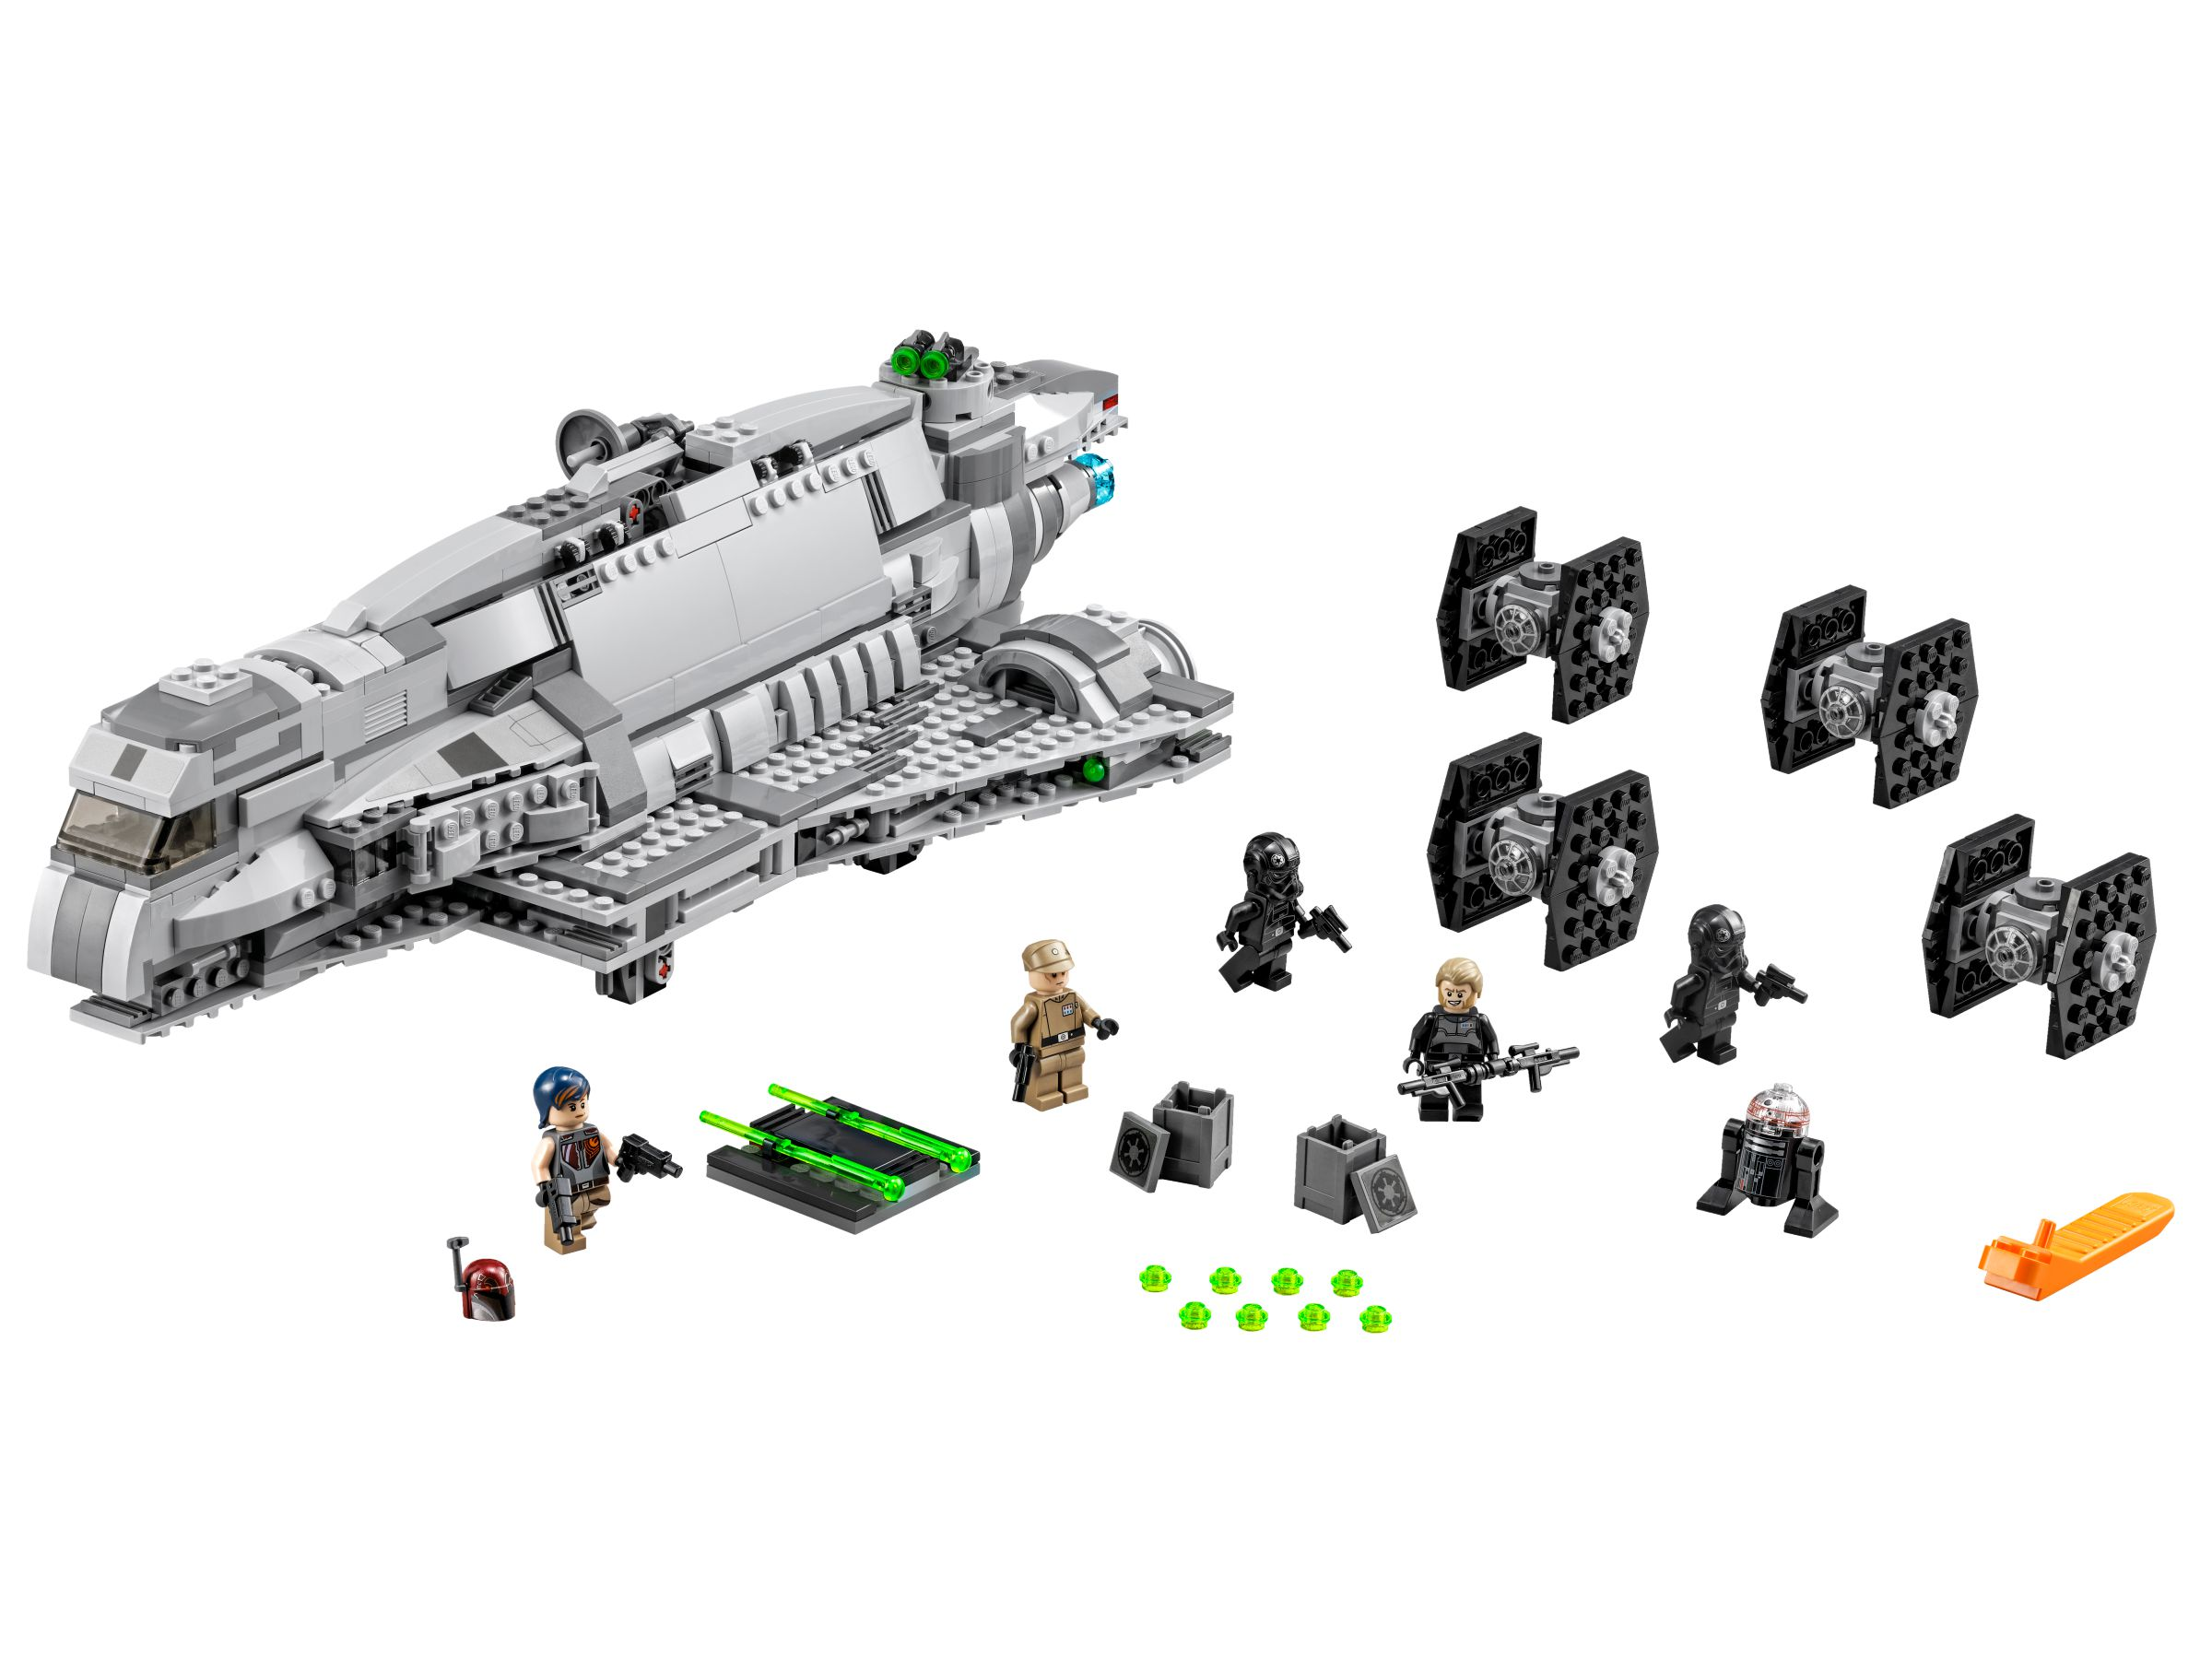 LEGO Star Wars 75106 Imperial Assault Carrier™ LEGO_75106.jpg